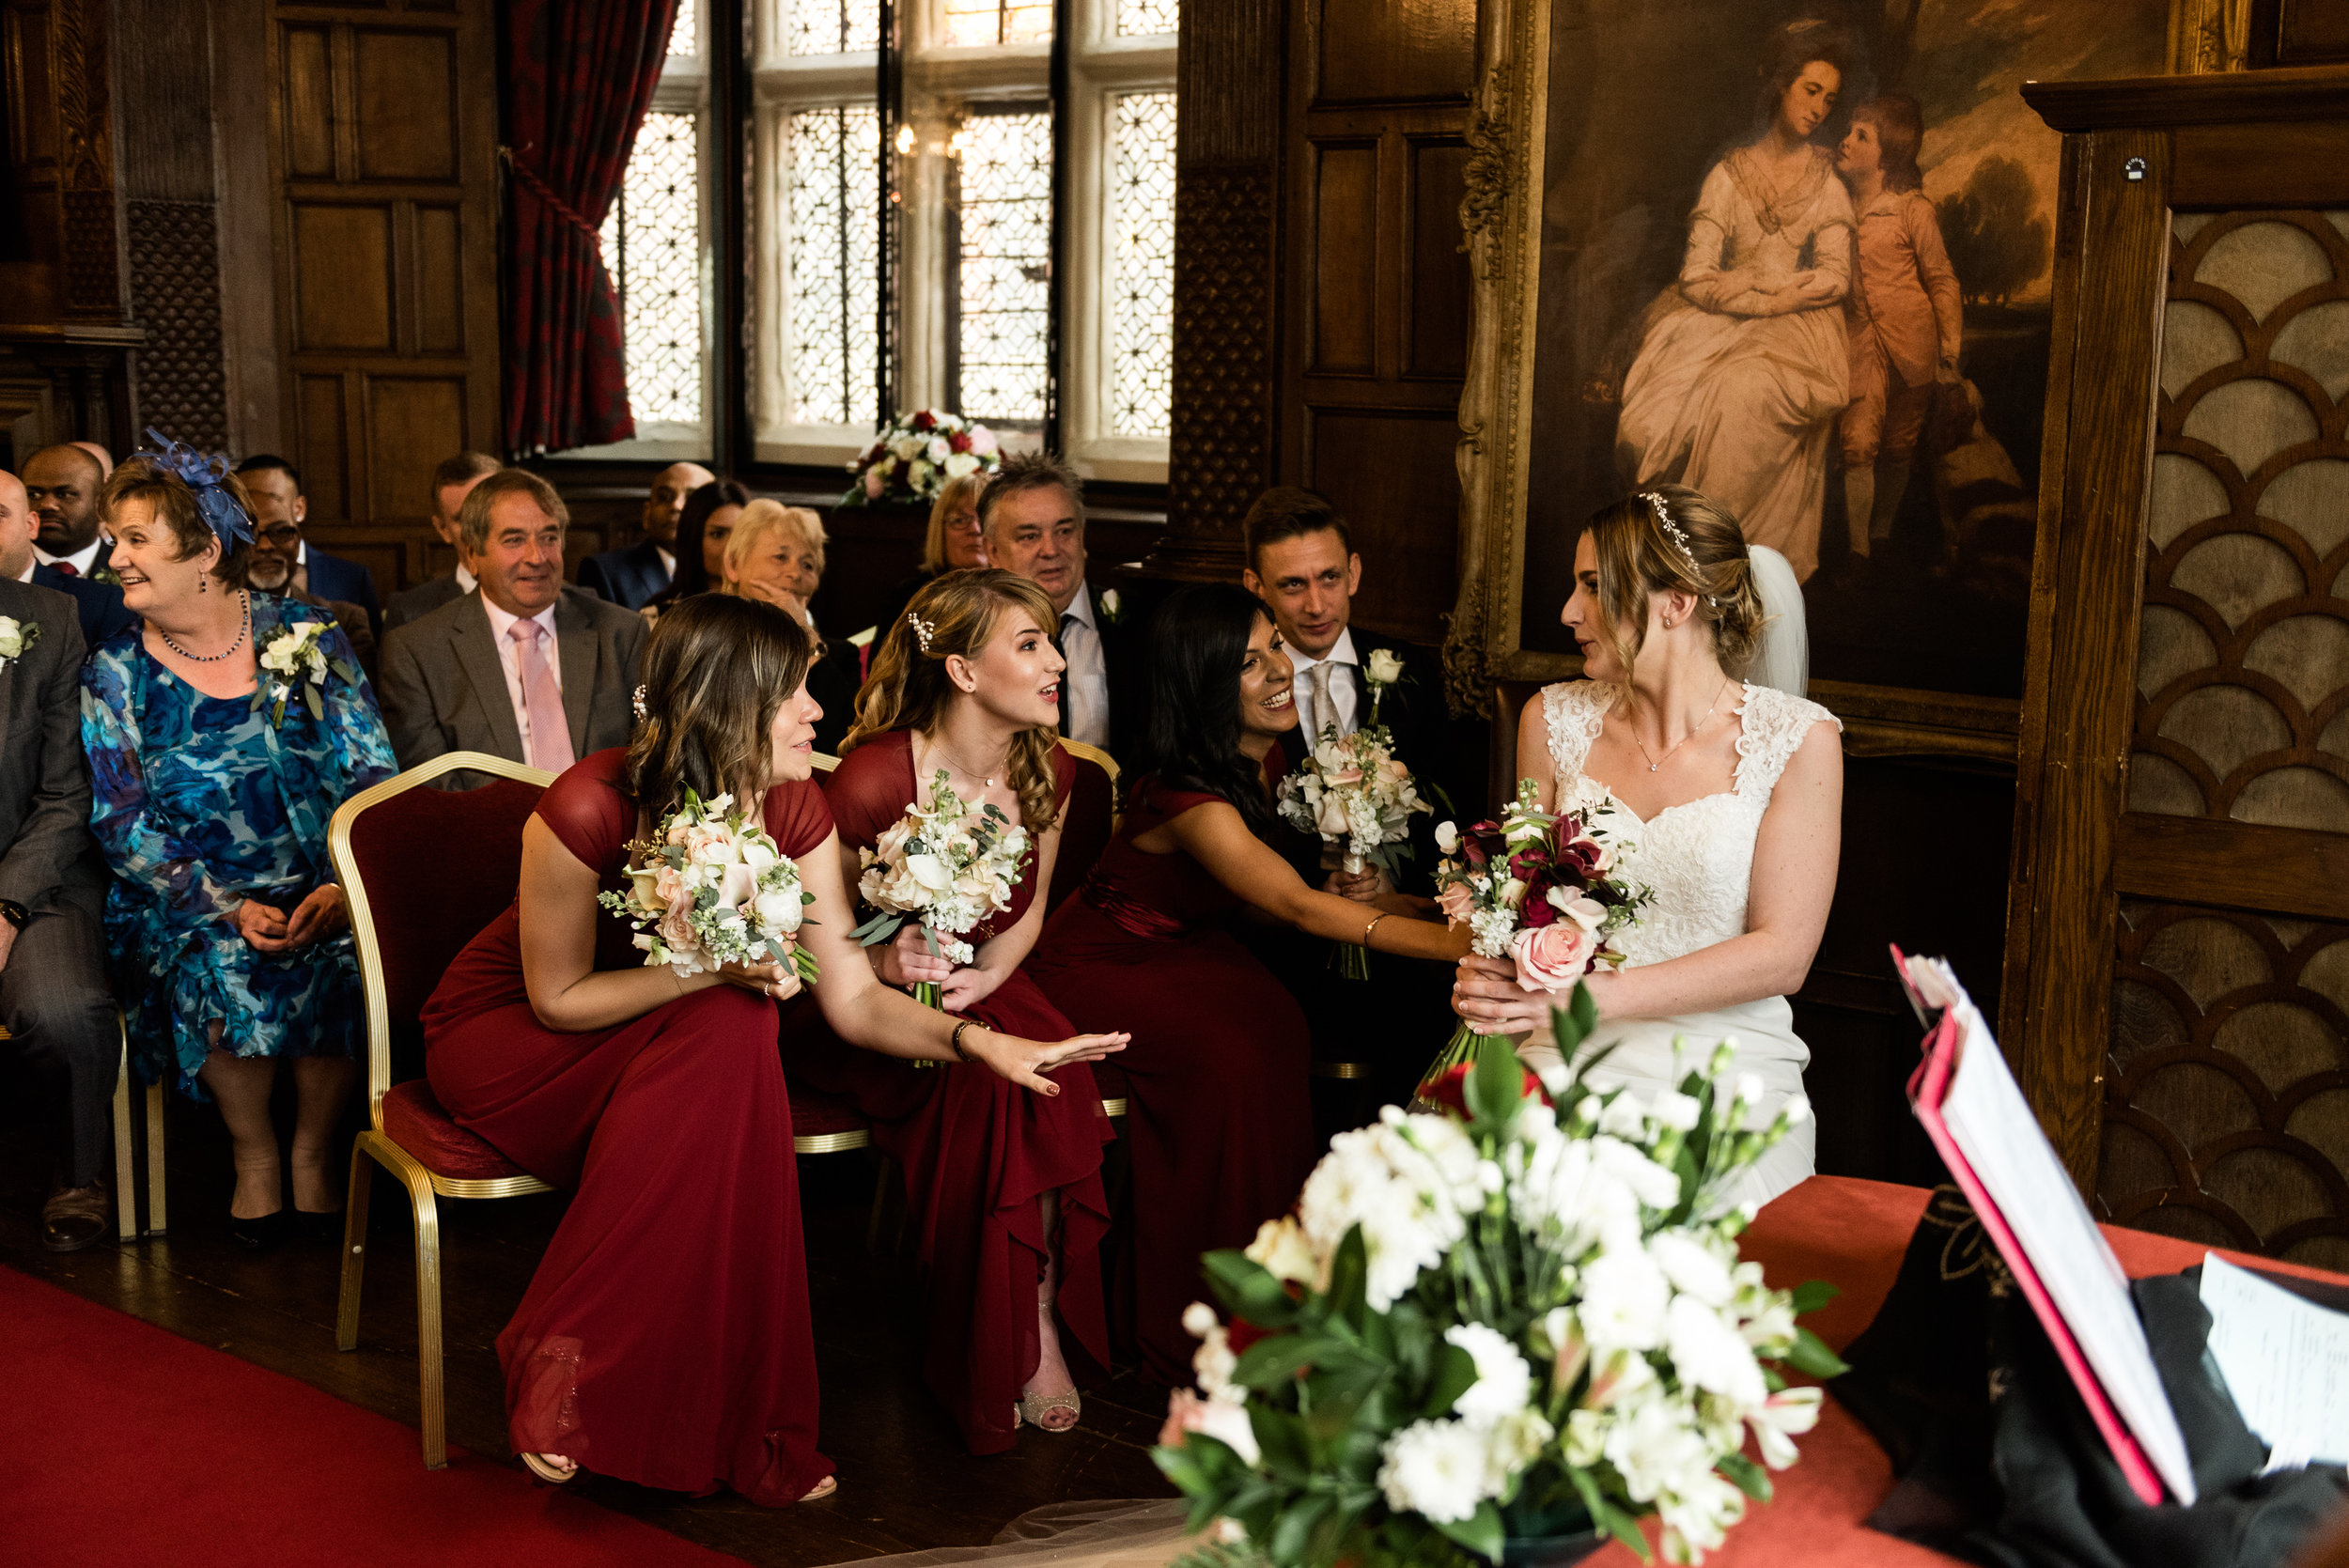 Birmingham Documentary Wedding Photography at New Hall, Sutton Coldfield Turkish Red Candid Reportage - Jenny Harper-26.jpg